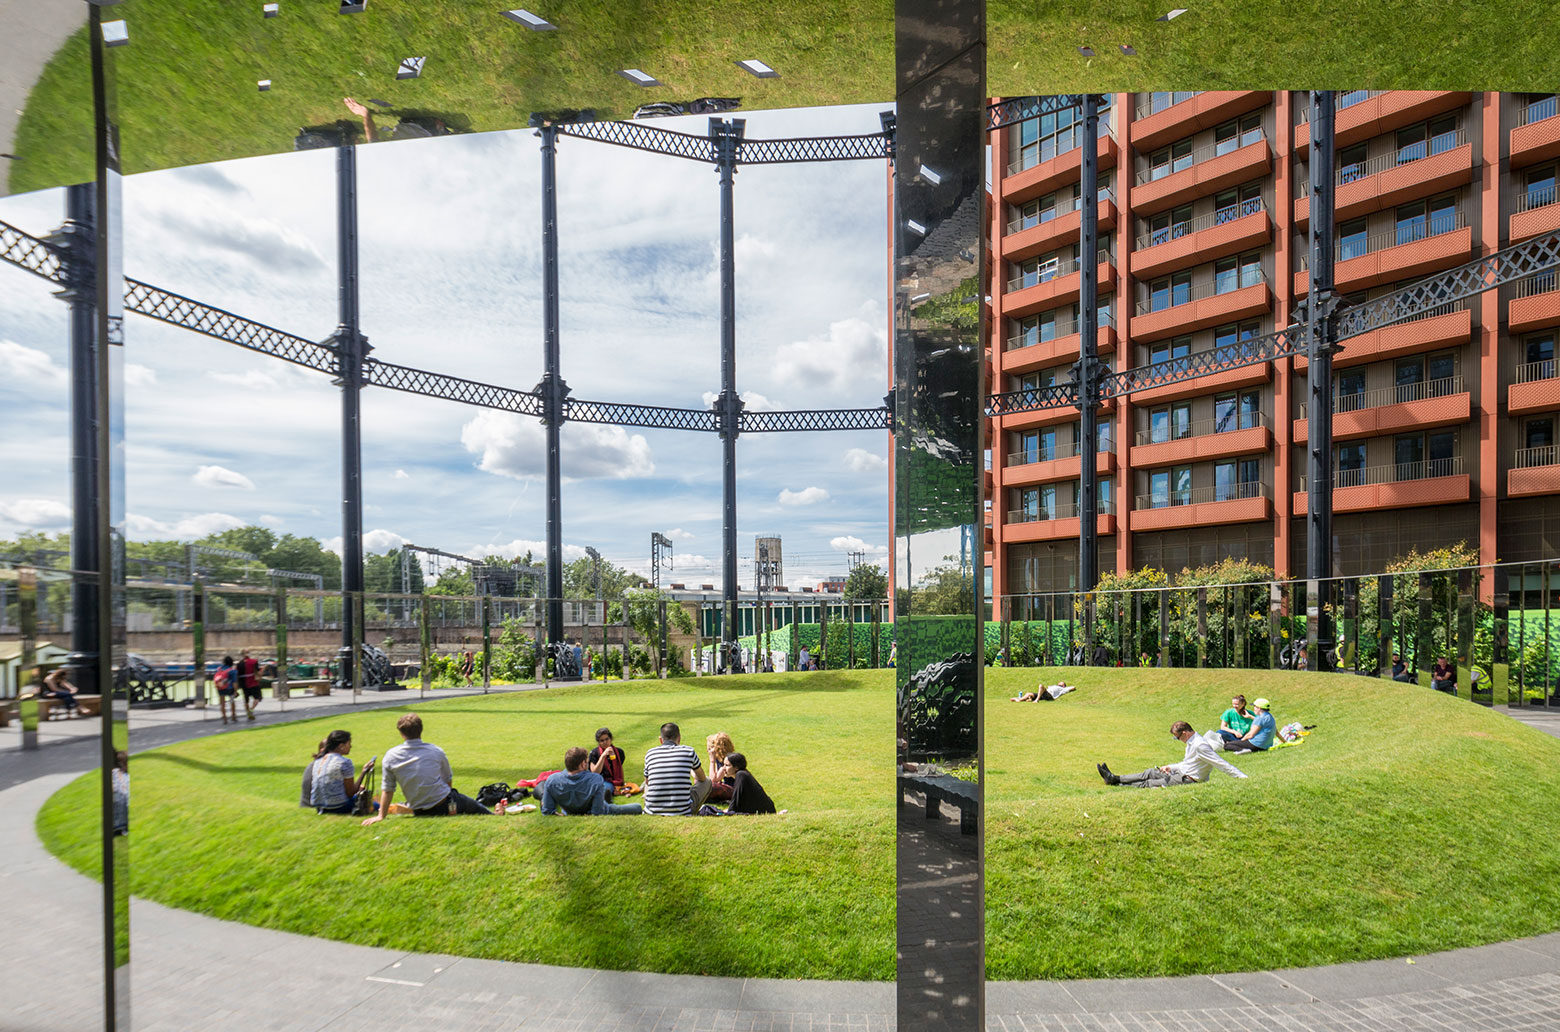 Gasholder Park wins an RIBA London Award